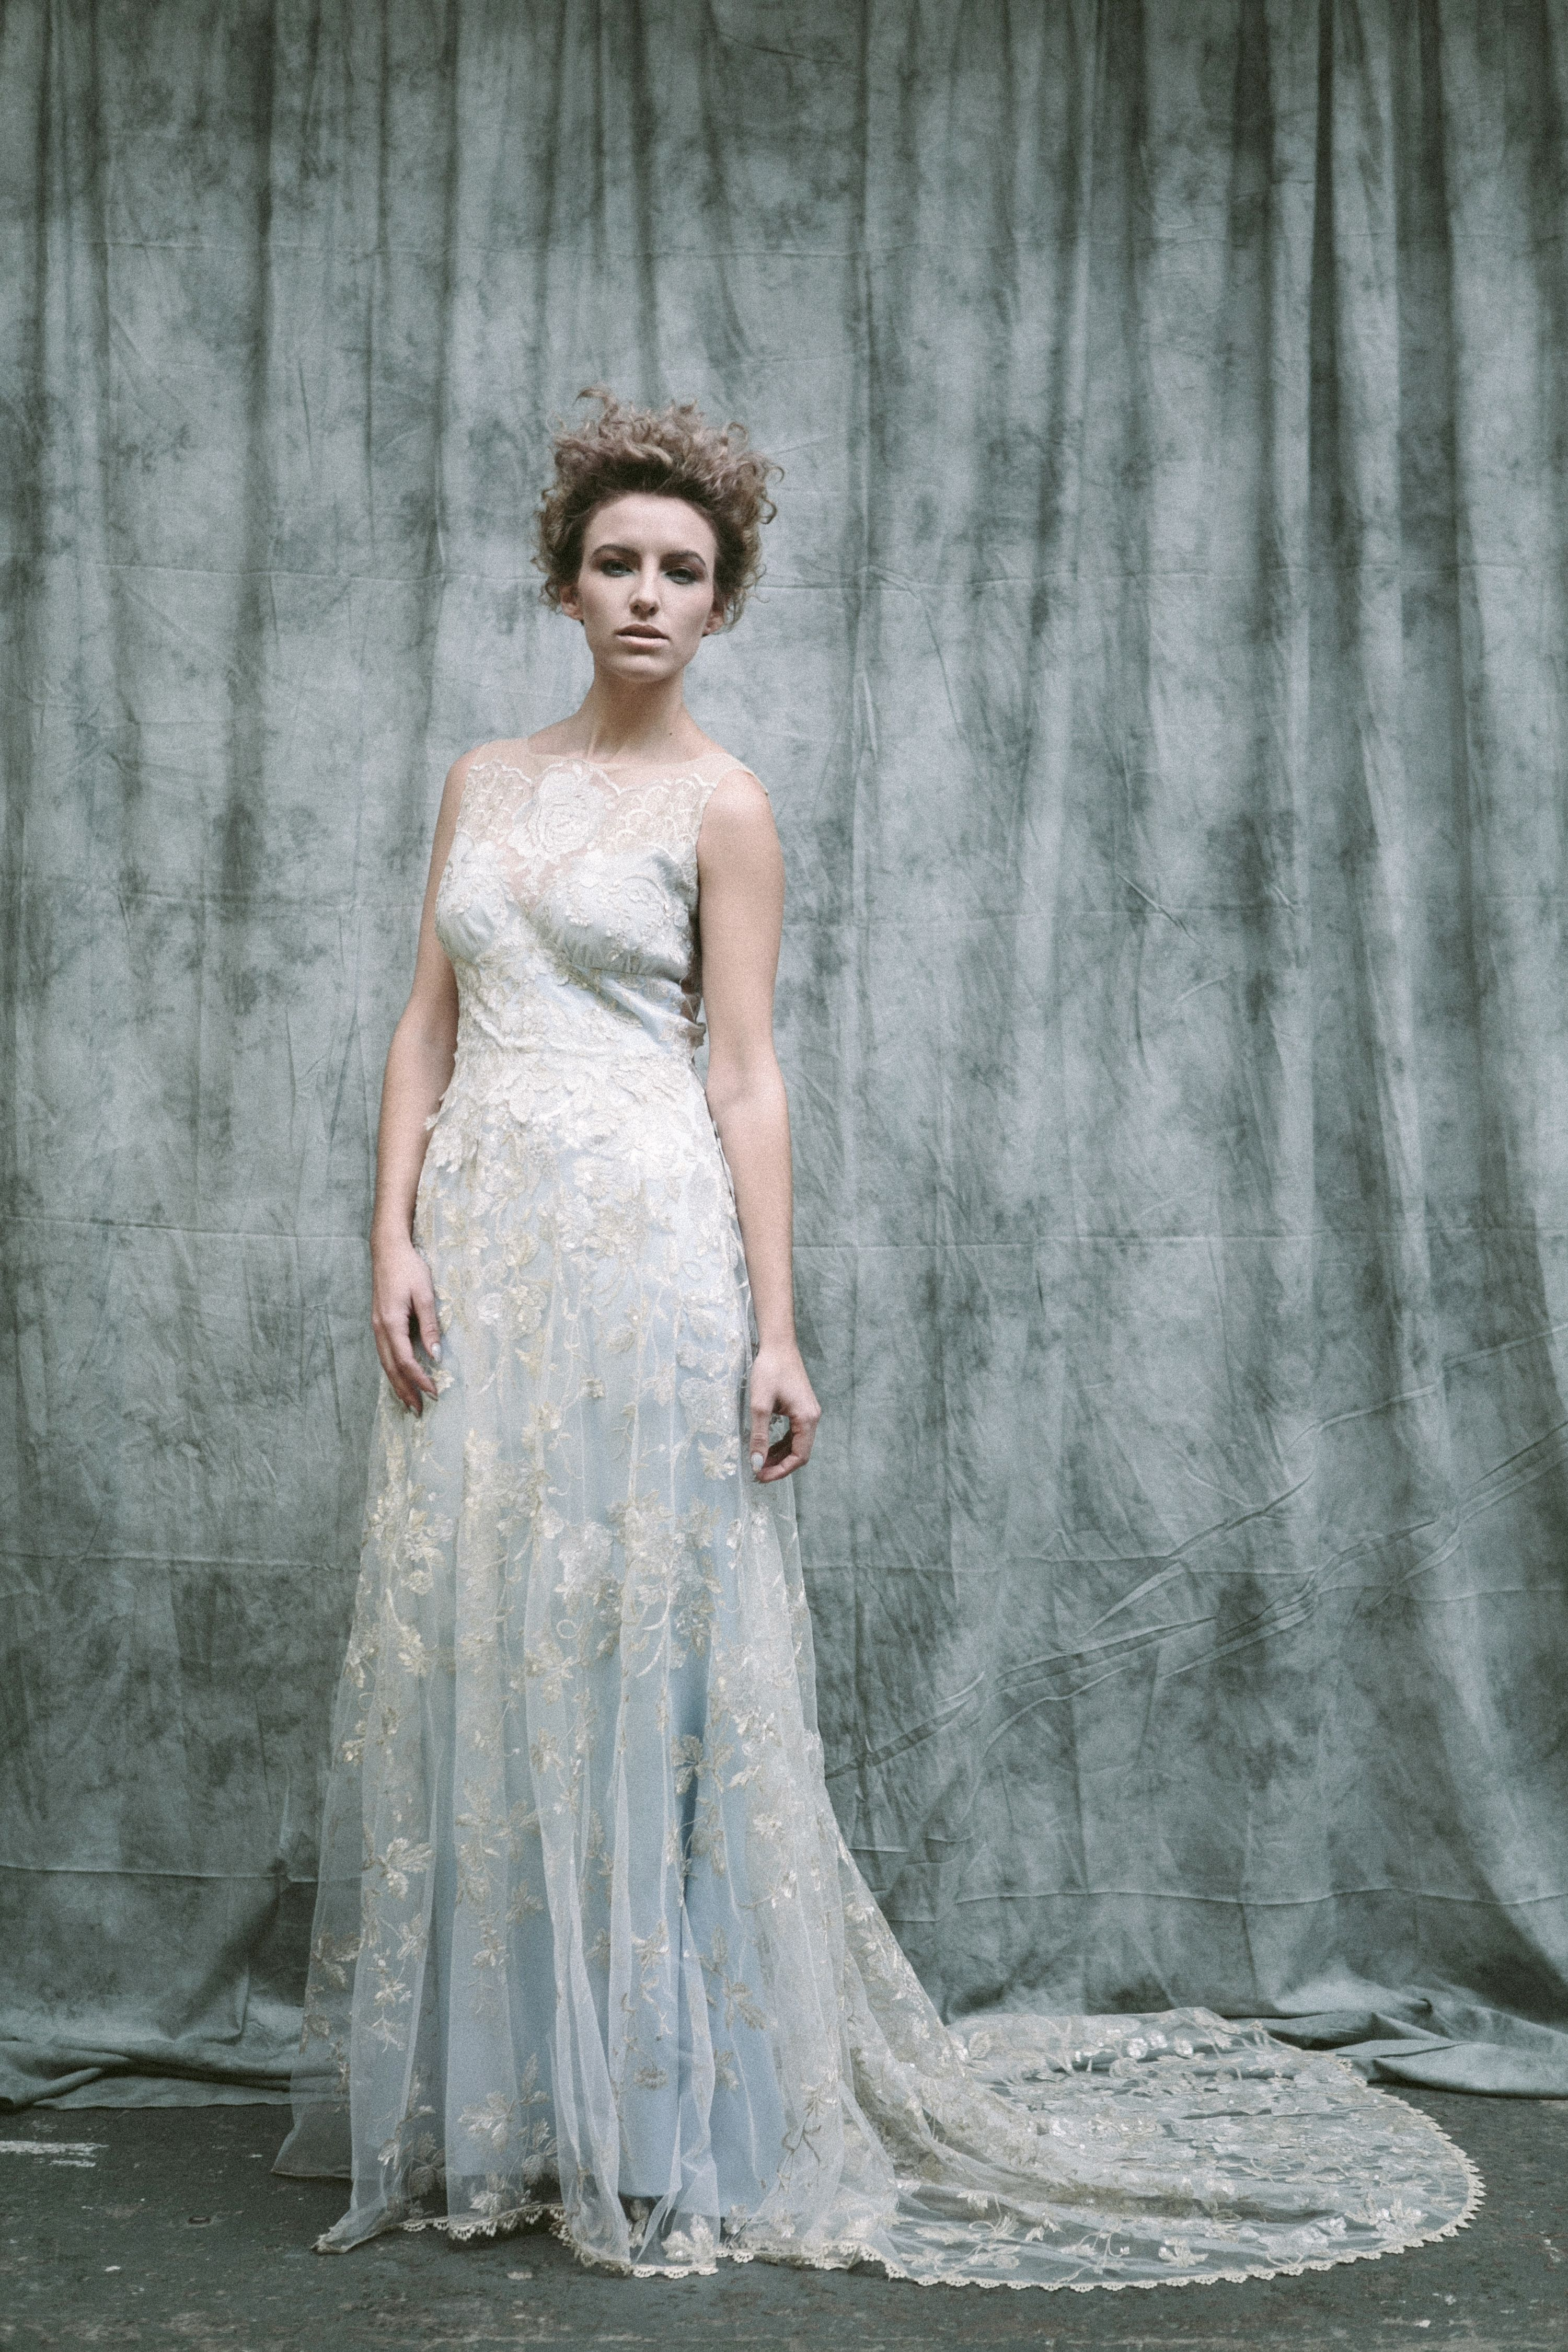 Eden by claire pettibone available at the white room image by wedding dresses sheffield from white room bridal wedding dress designer lace simple plain suzanne neville rosa clara jenny packham sassi holford halfpenny ombrellifo Choice Image